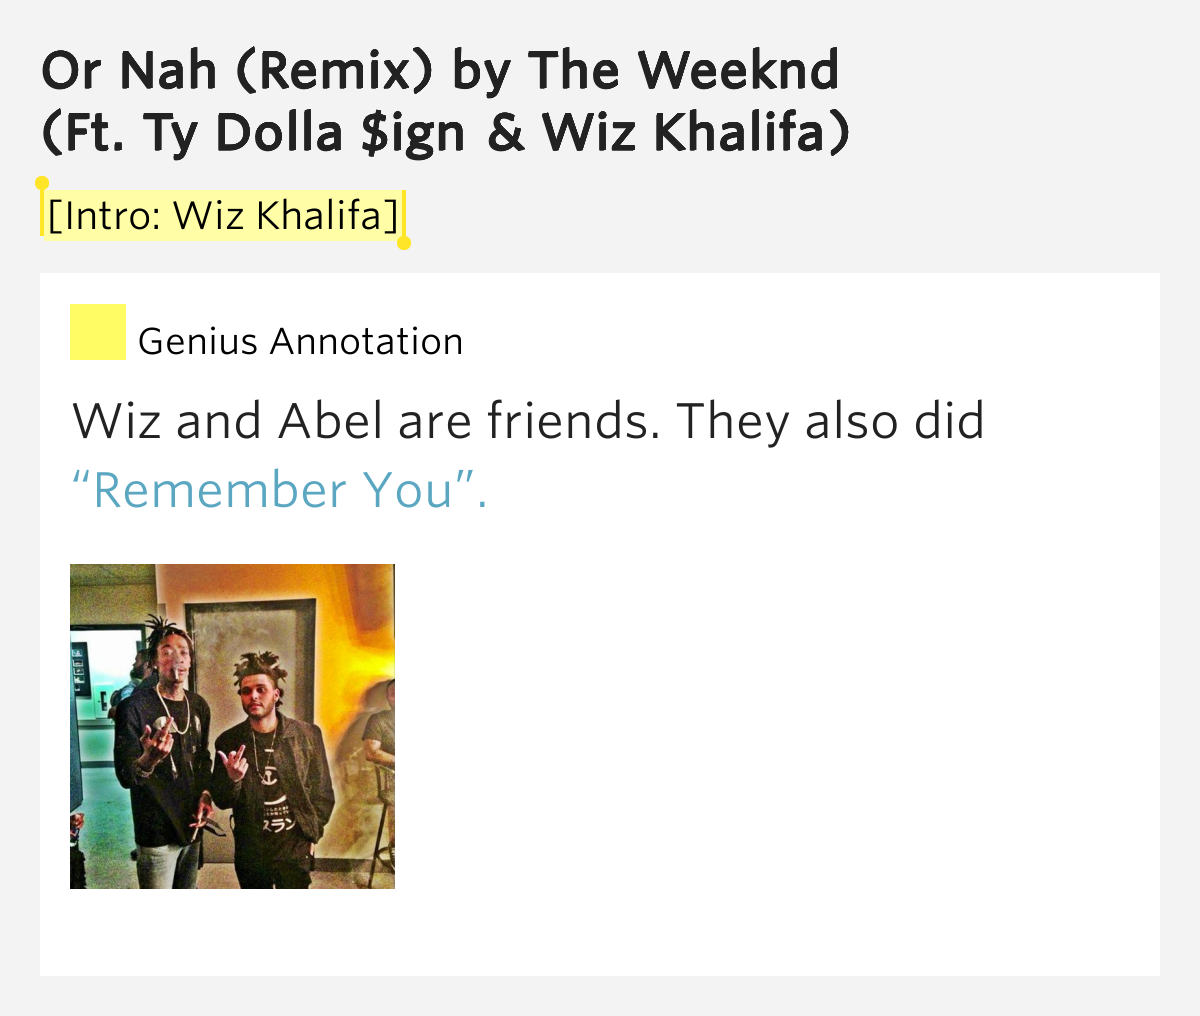 [Intro: Wiz Khalifa] – Or Nah (Remix) Lyrics Meaning